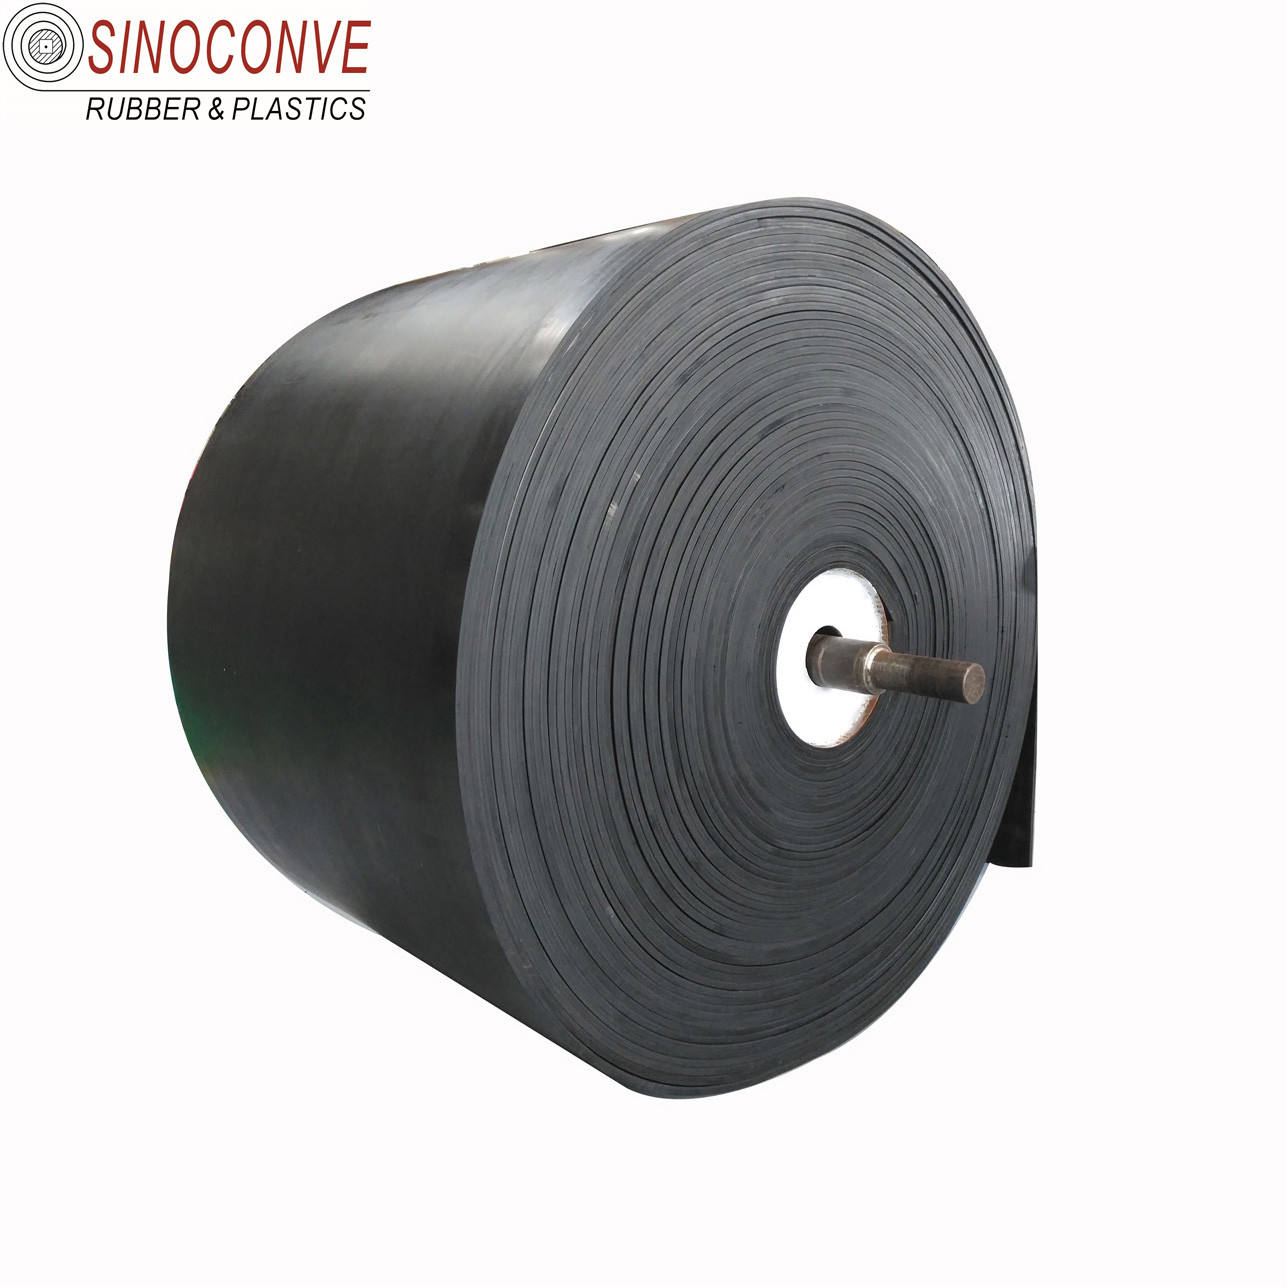 EP300 EP500/4 EP400/3 4 fabric ply nylon Flat Rubber conveyer belt for stone crusher